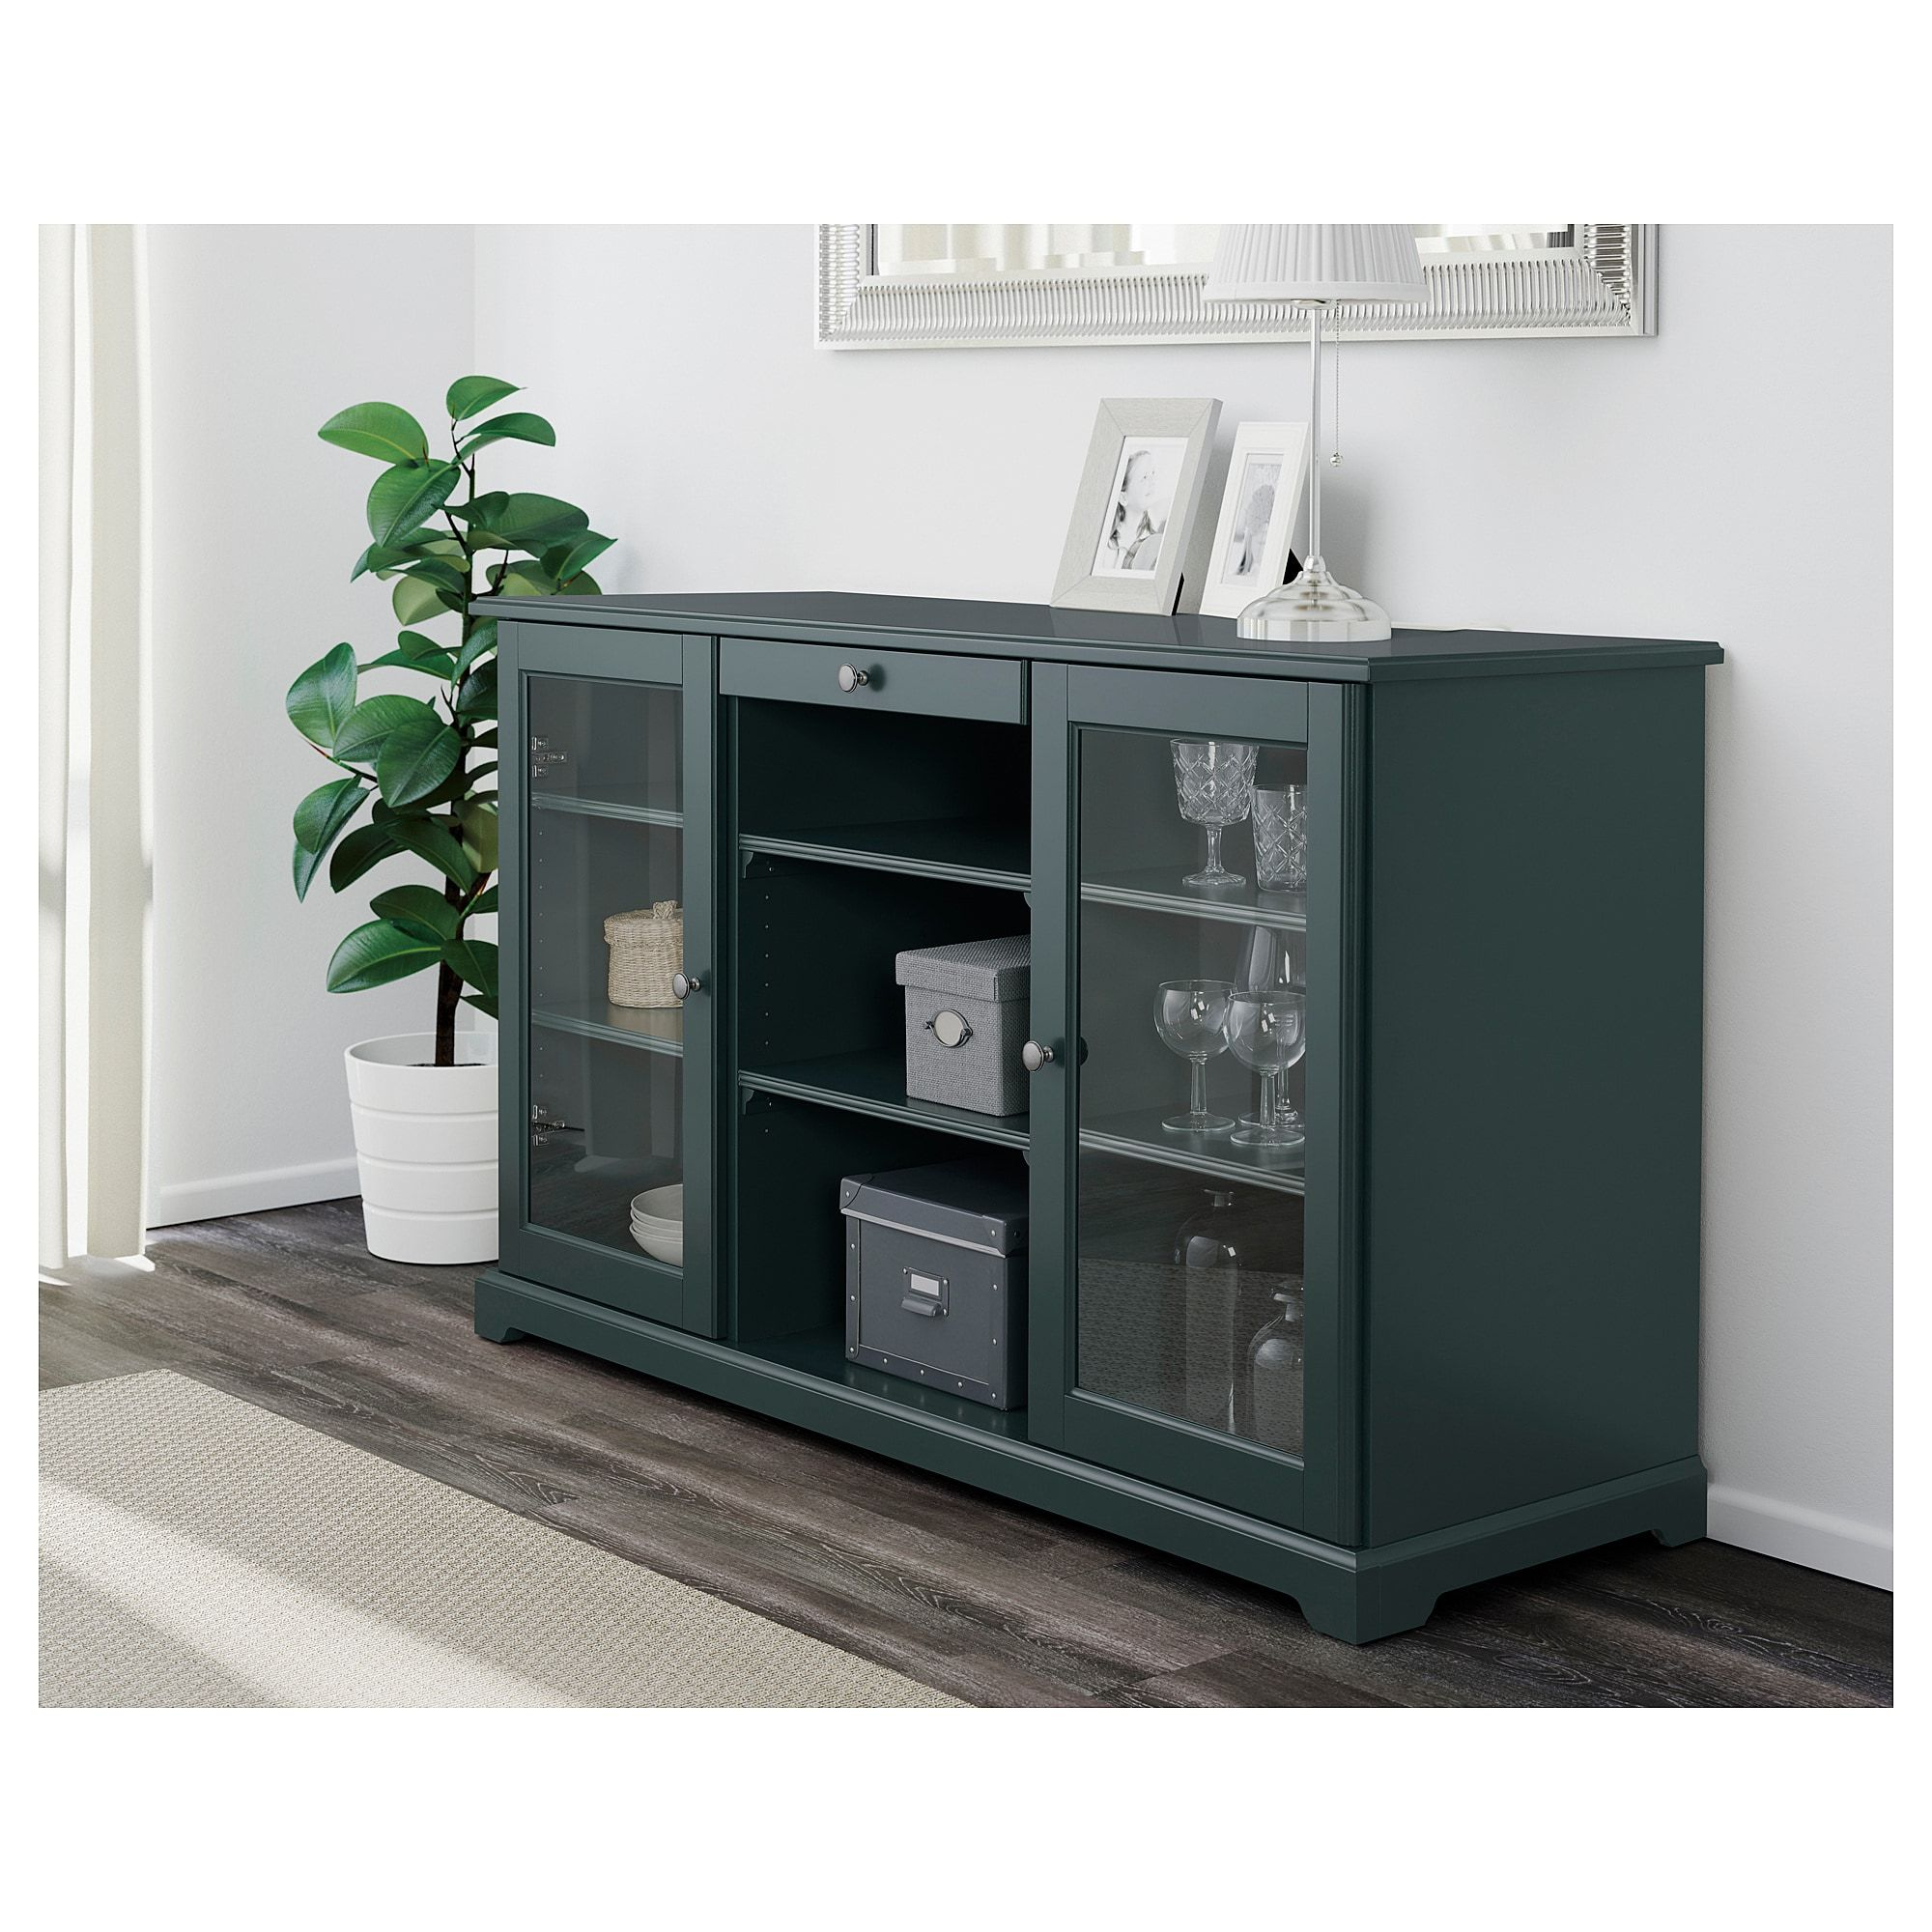 Buffet Pas Cher Ikea Ikea Liatorp Sideboard Dark Olive Green In 2019 Products